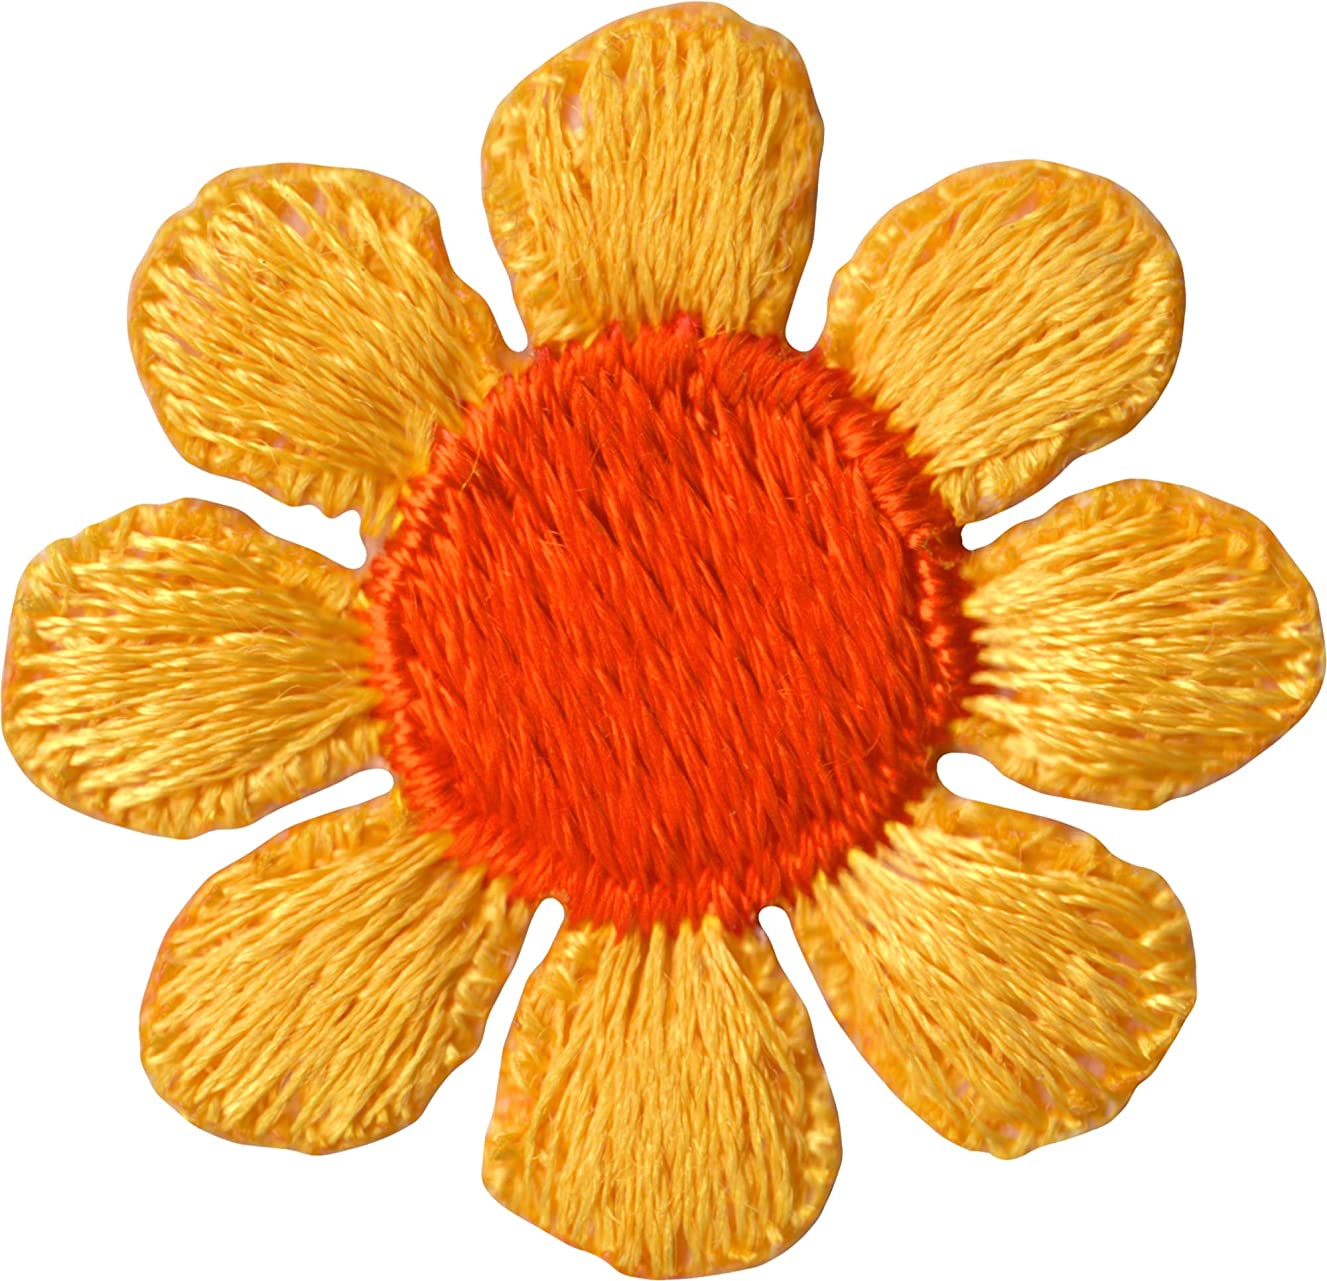 Daisy Flower - Yellow with Orange Center - Embroidered Sew or Iron on Patch